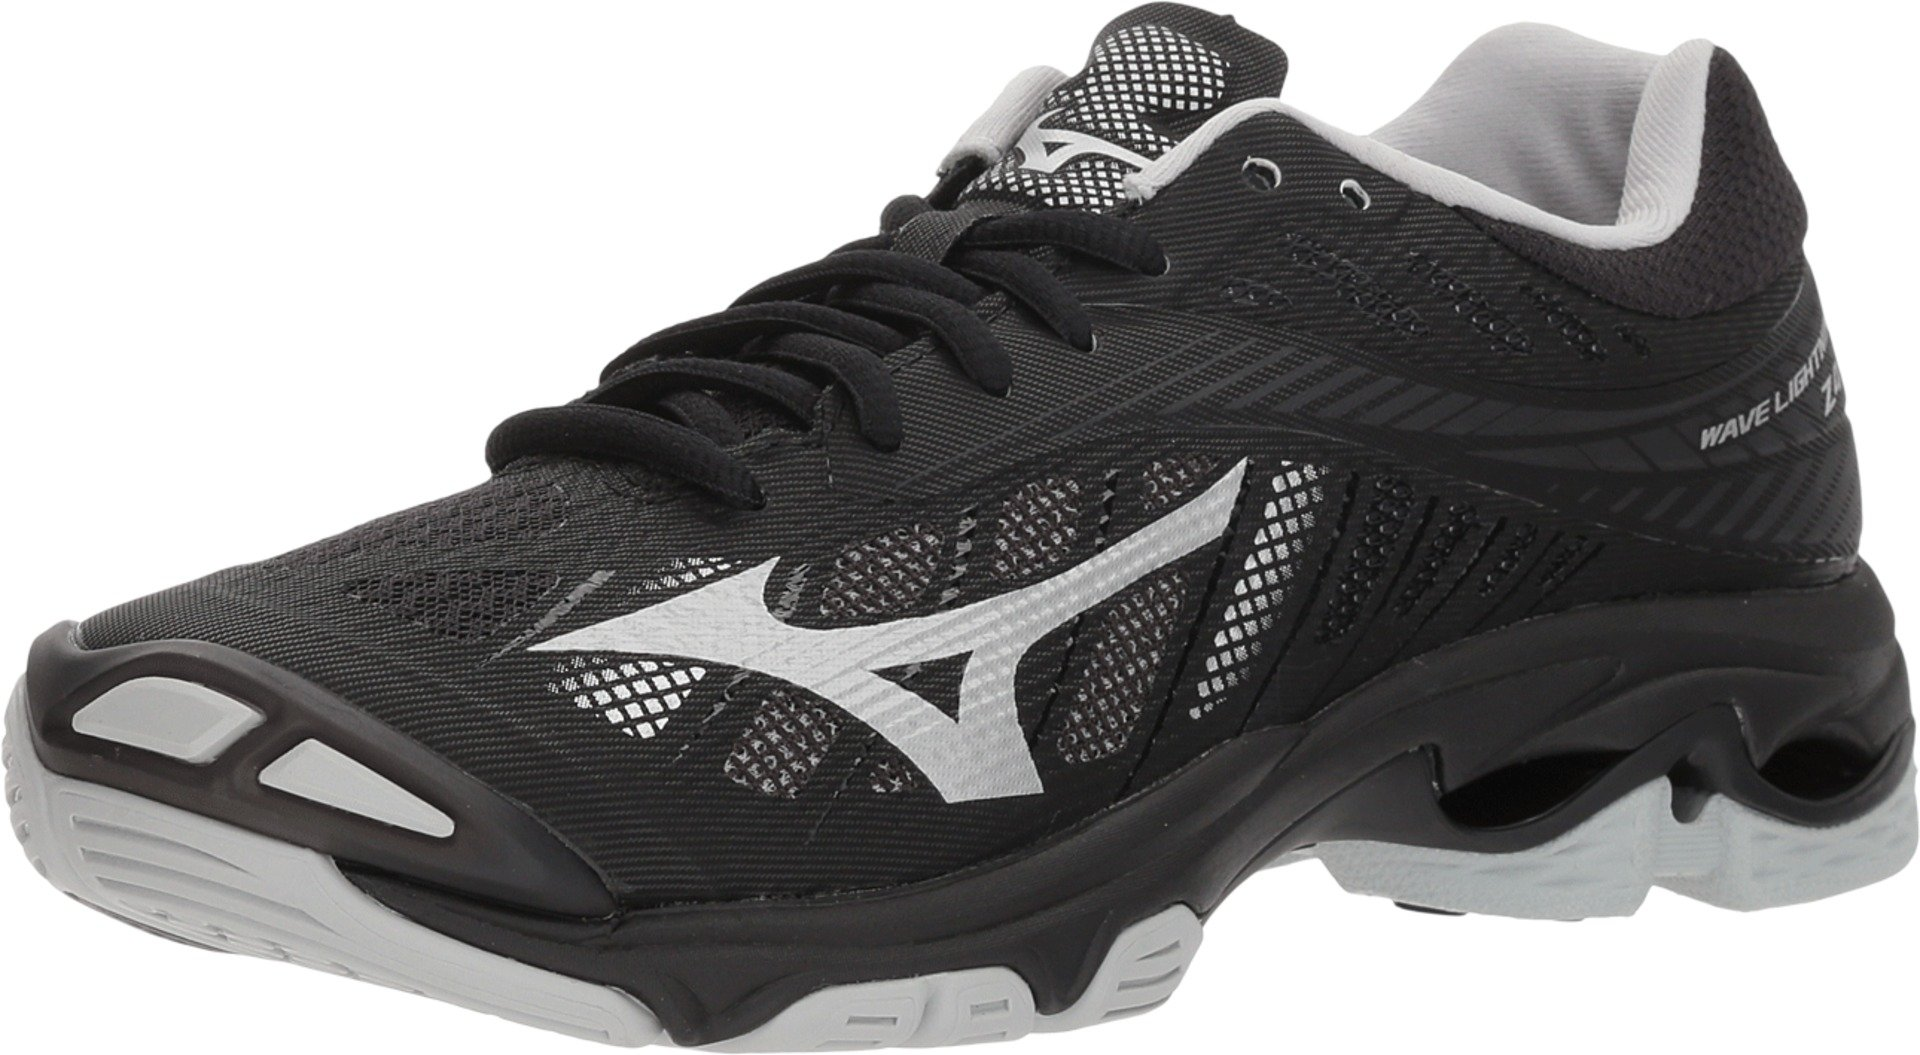 Mizuno (MIZD9) Women's Wave Lightning Z4 Volleyball Shoe, Black/Silver, Women's 7 B US